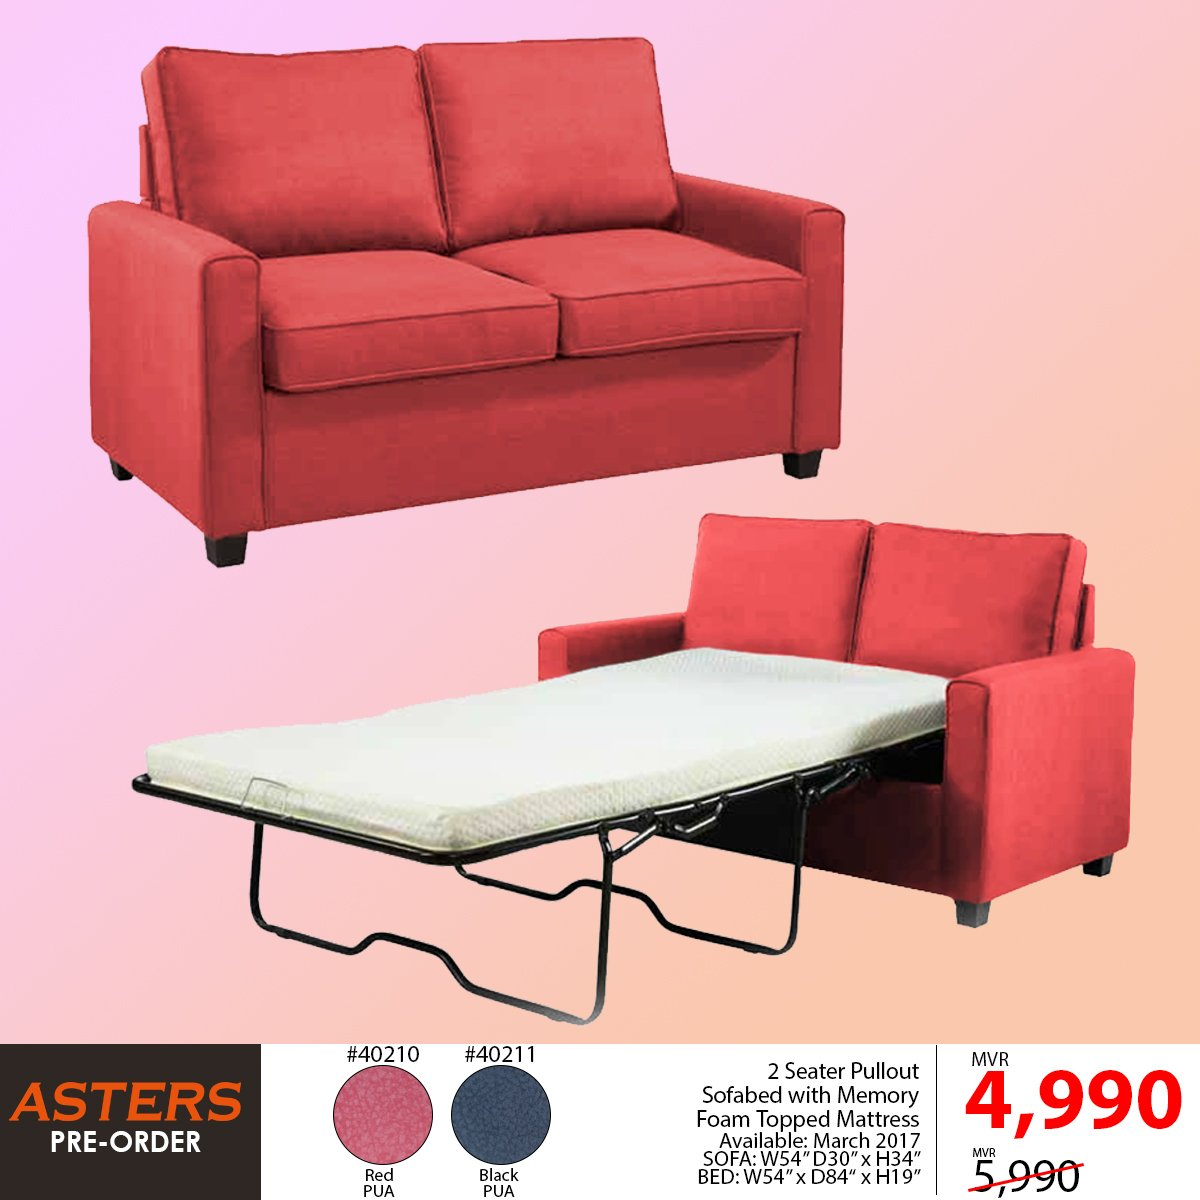 2 Seater Pullout Sofabed With Memory